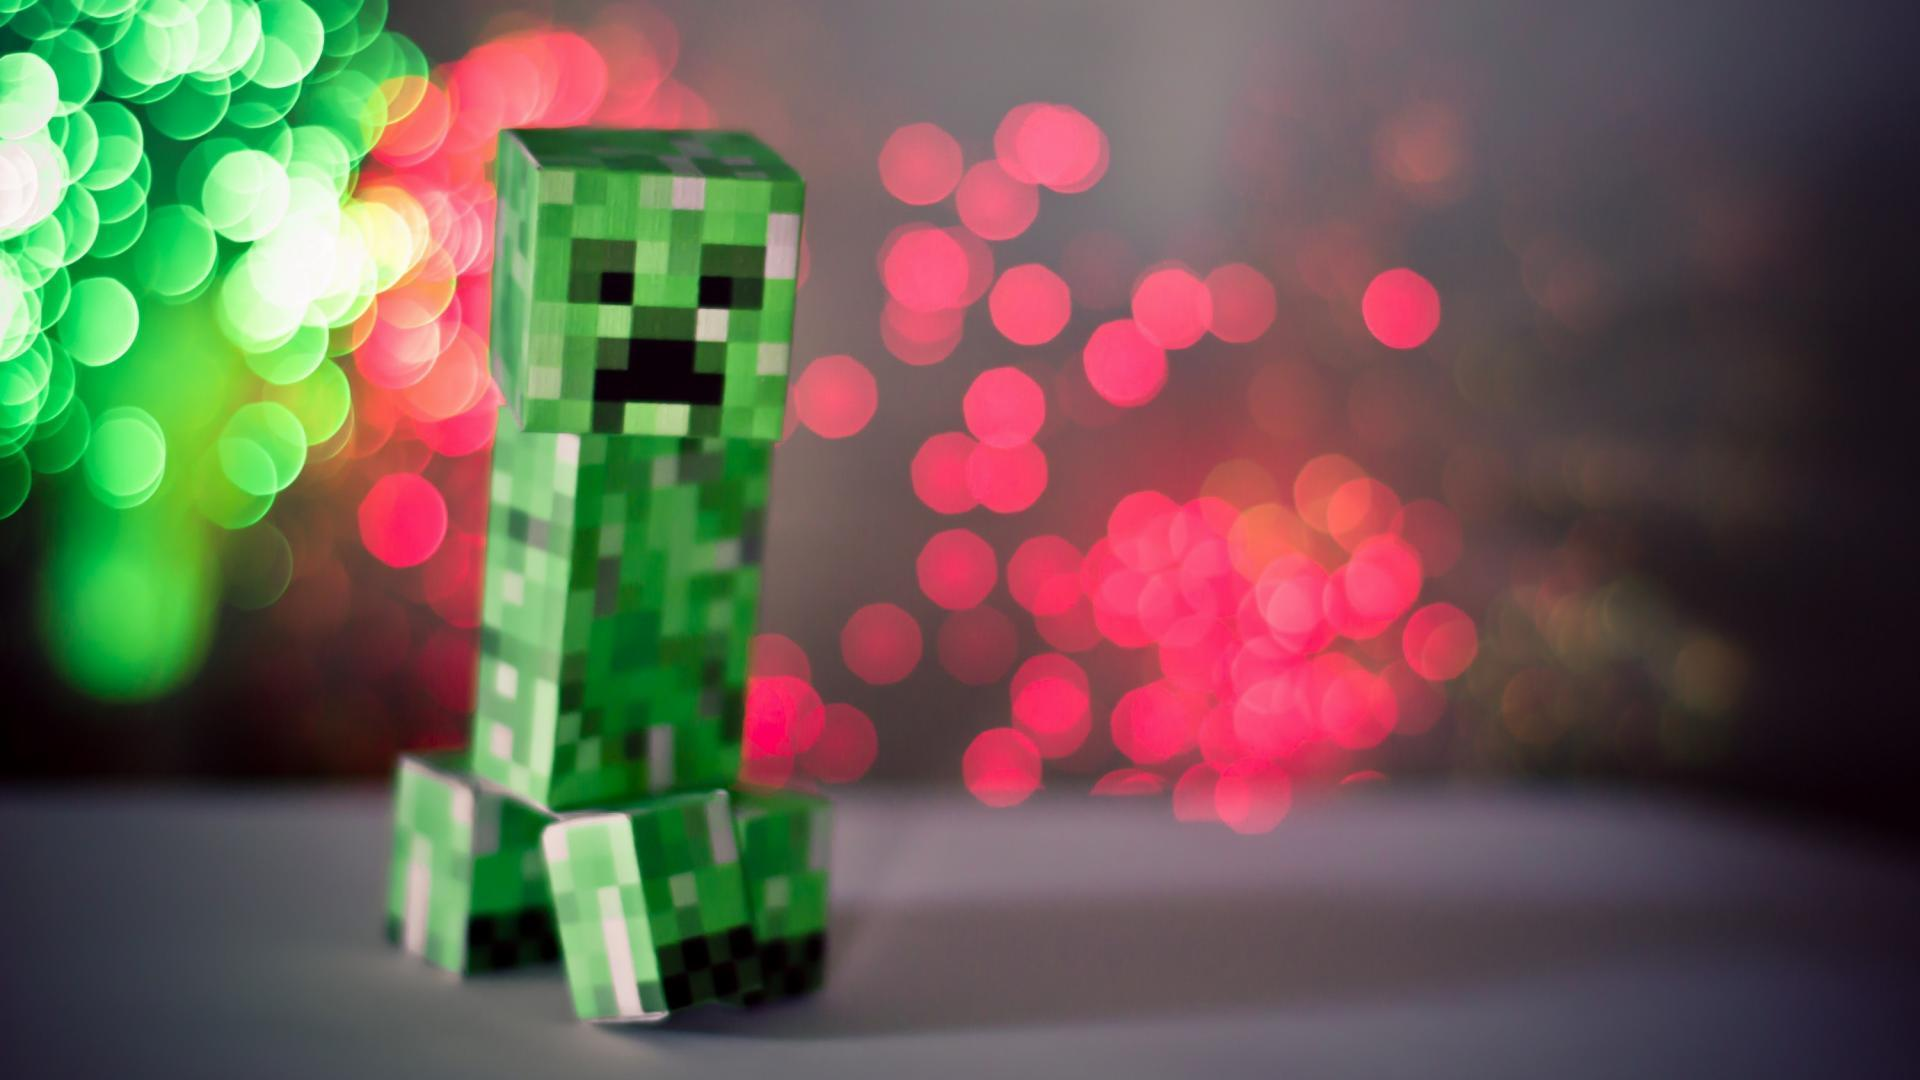 Minecraft Img For > Minecraft Wallpaper Hd Creeper